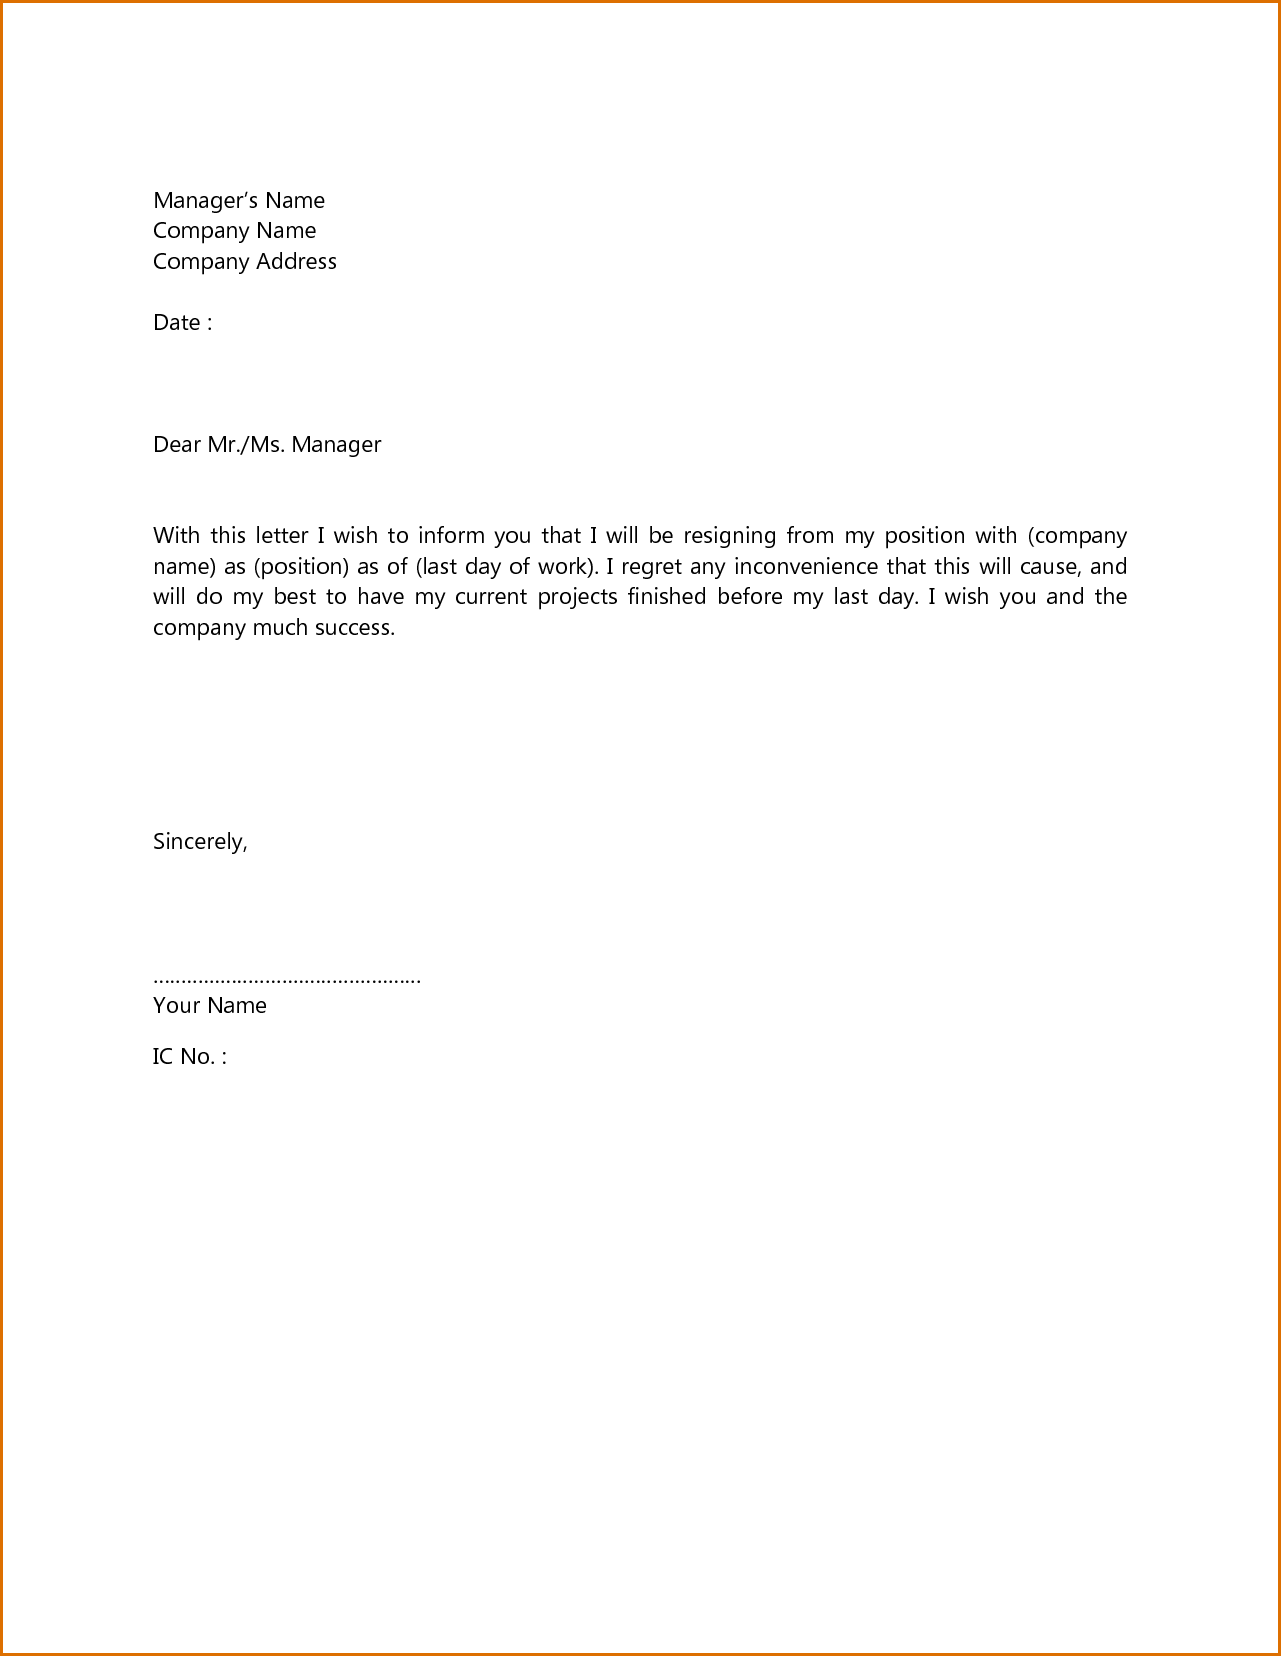 Termination Letter Sample Singapore Formal Resignation Cover Samples Insurance Agent